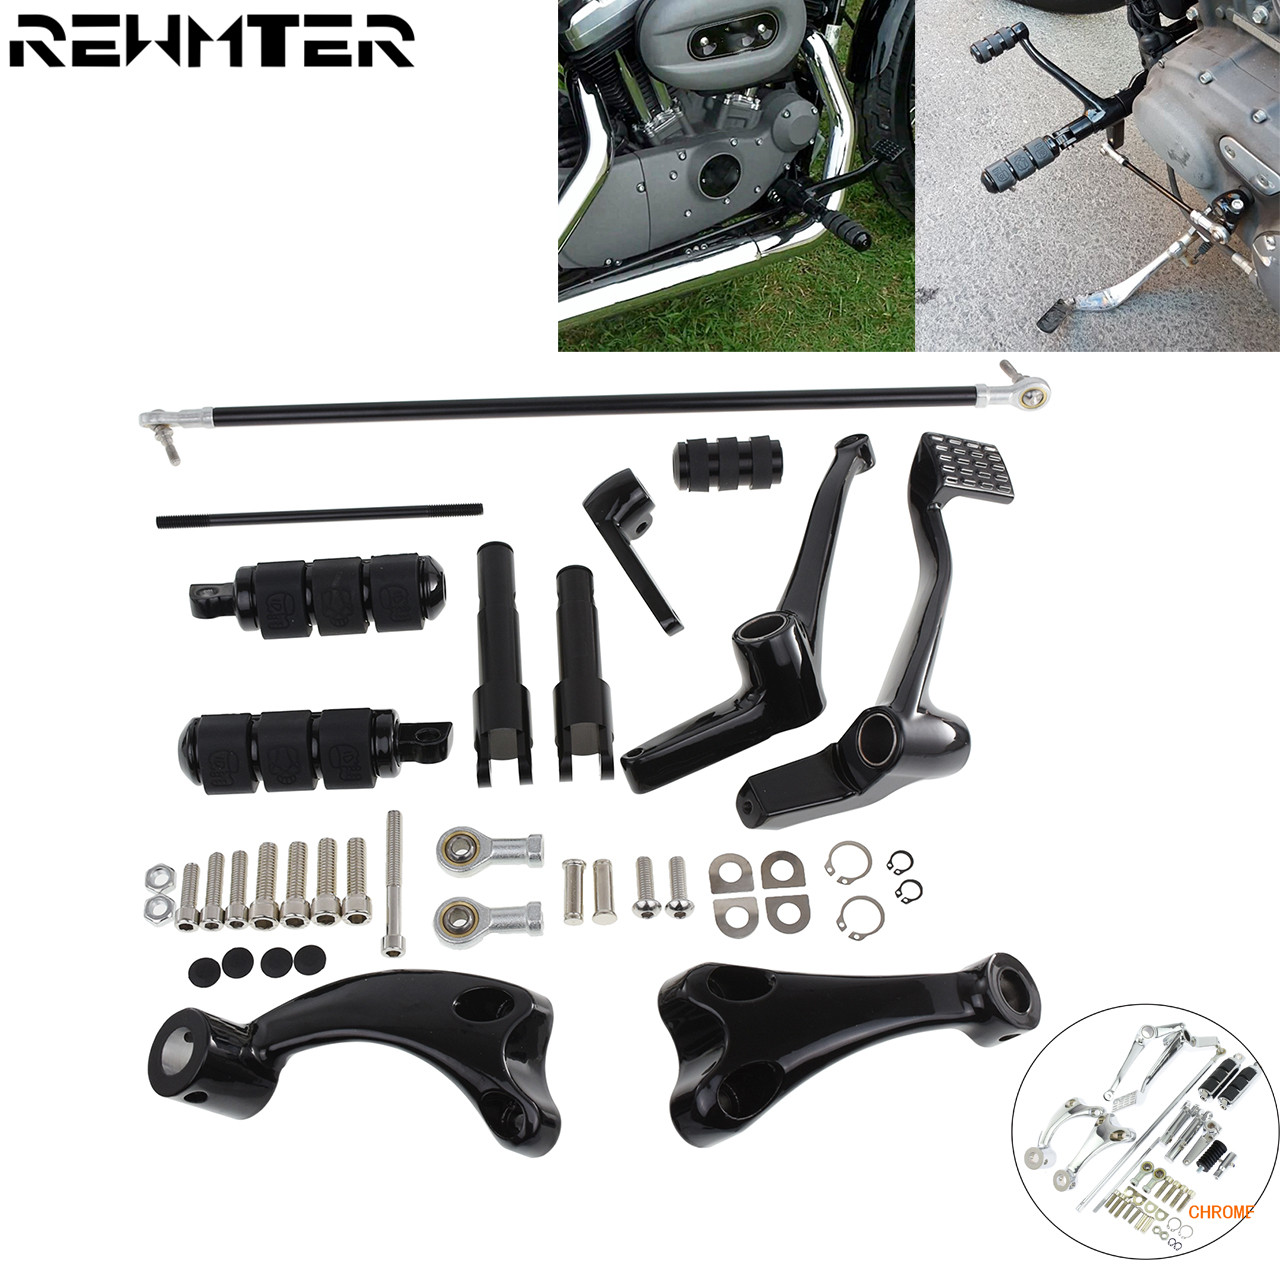 Gloss Black Forward Controls Pegs Levers Linkages For Harley XL 883 1200 2014-18